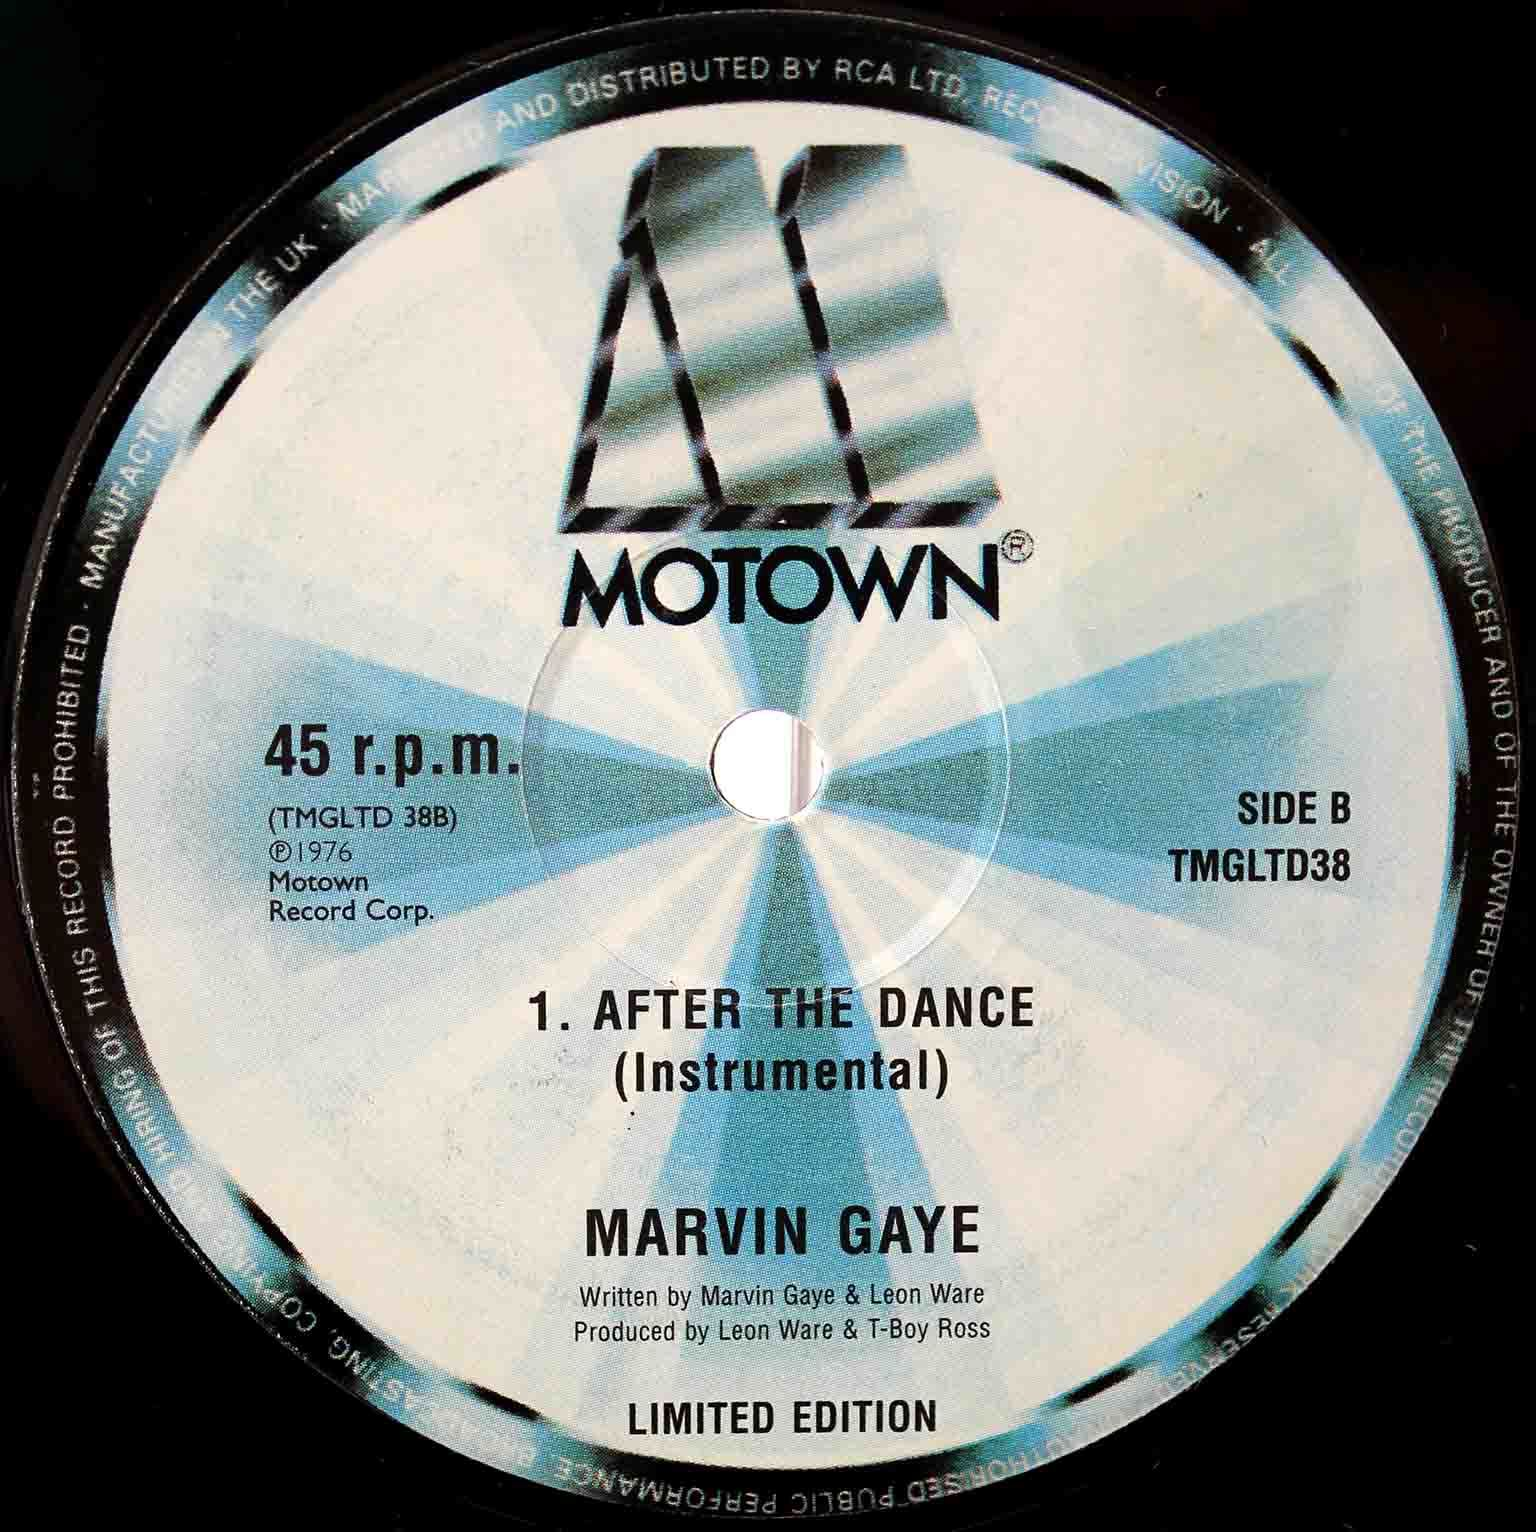 Marvin Gaye ‎– after the dance 04